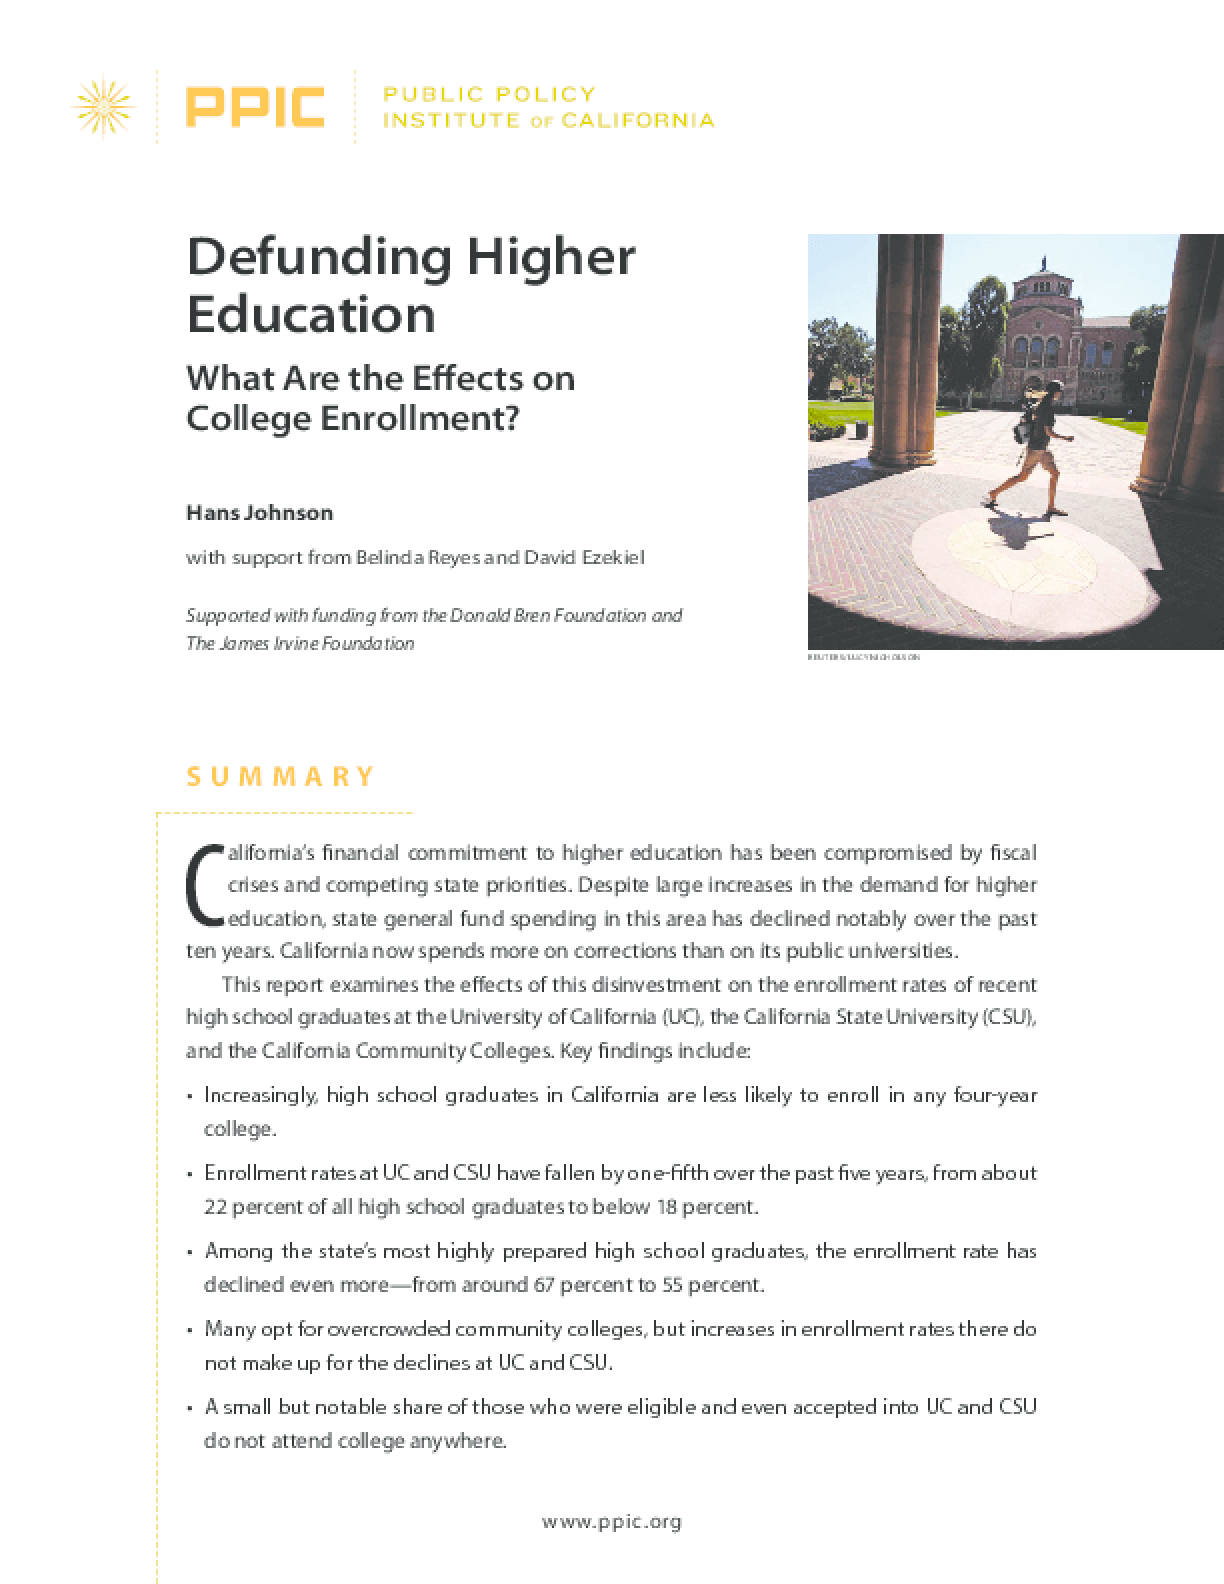 Defunding Higher Education: What Are the Effects on College Enrollment?